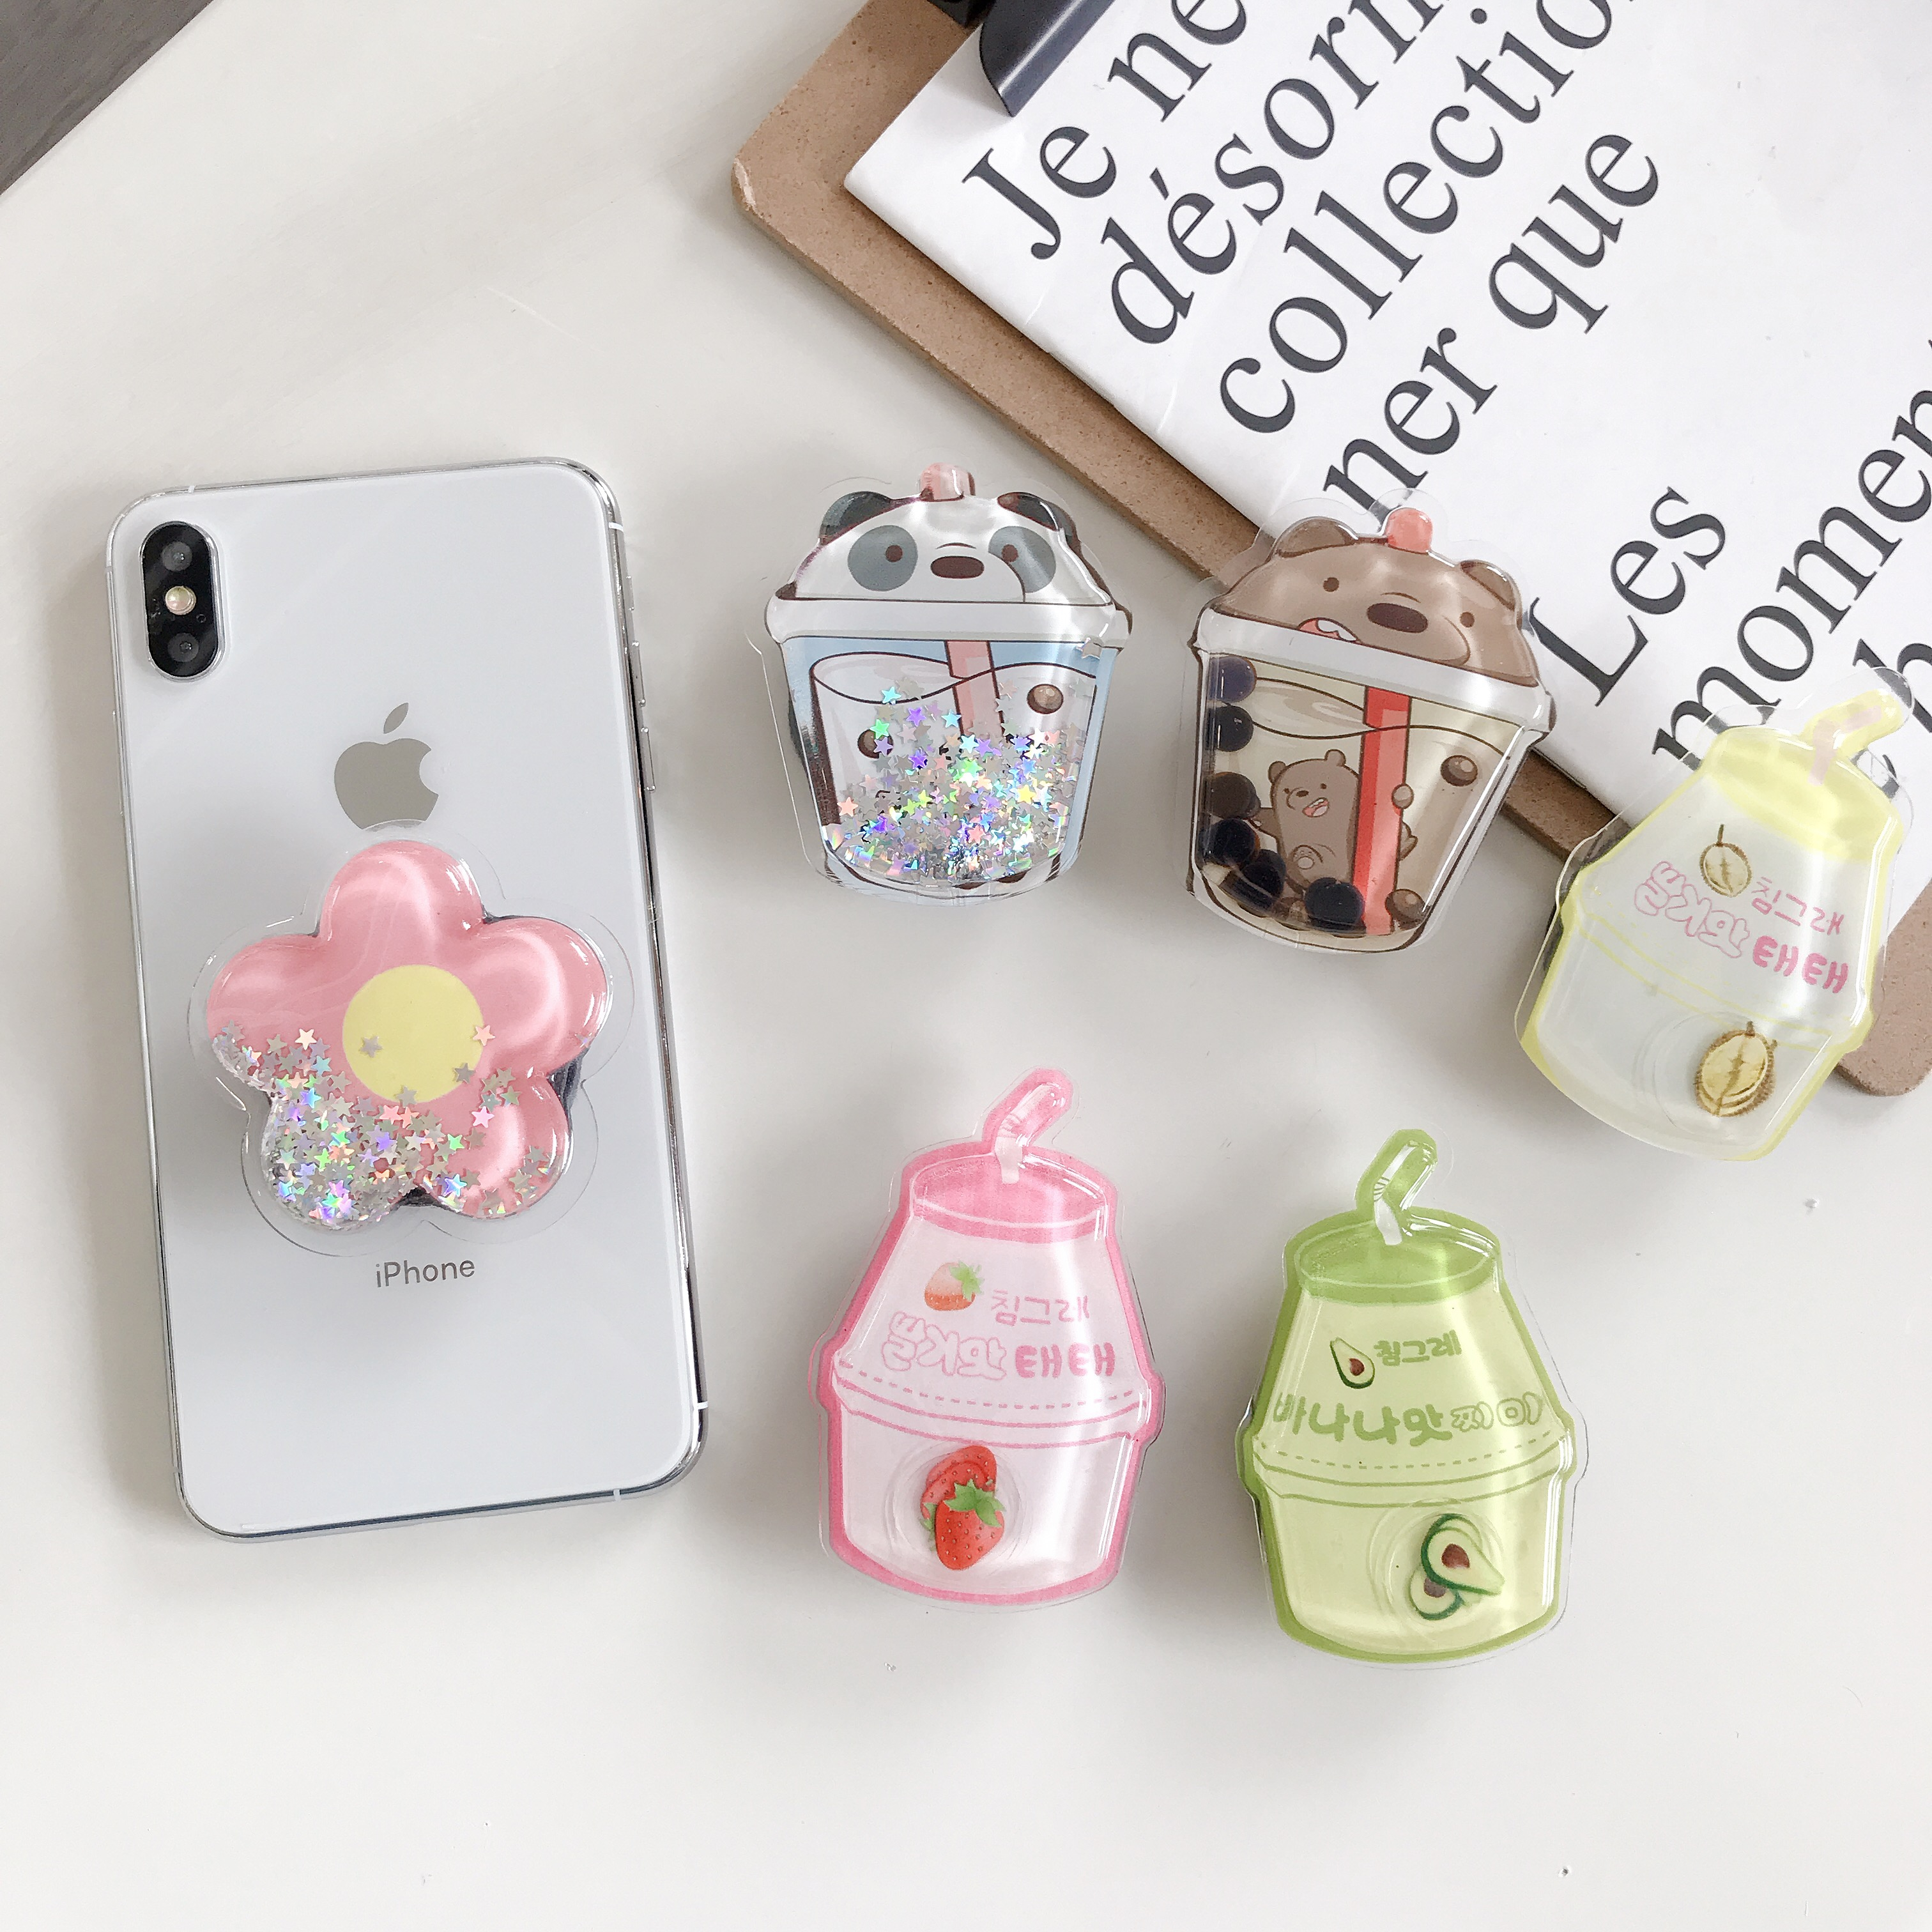 PPOSocket Mobile Phone Soket Stretch Bracket Cartoon Air Bag Phone Expanding Phone Stand Finger Car Phone Holder Pipsocket